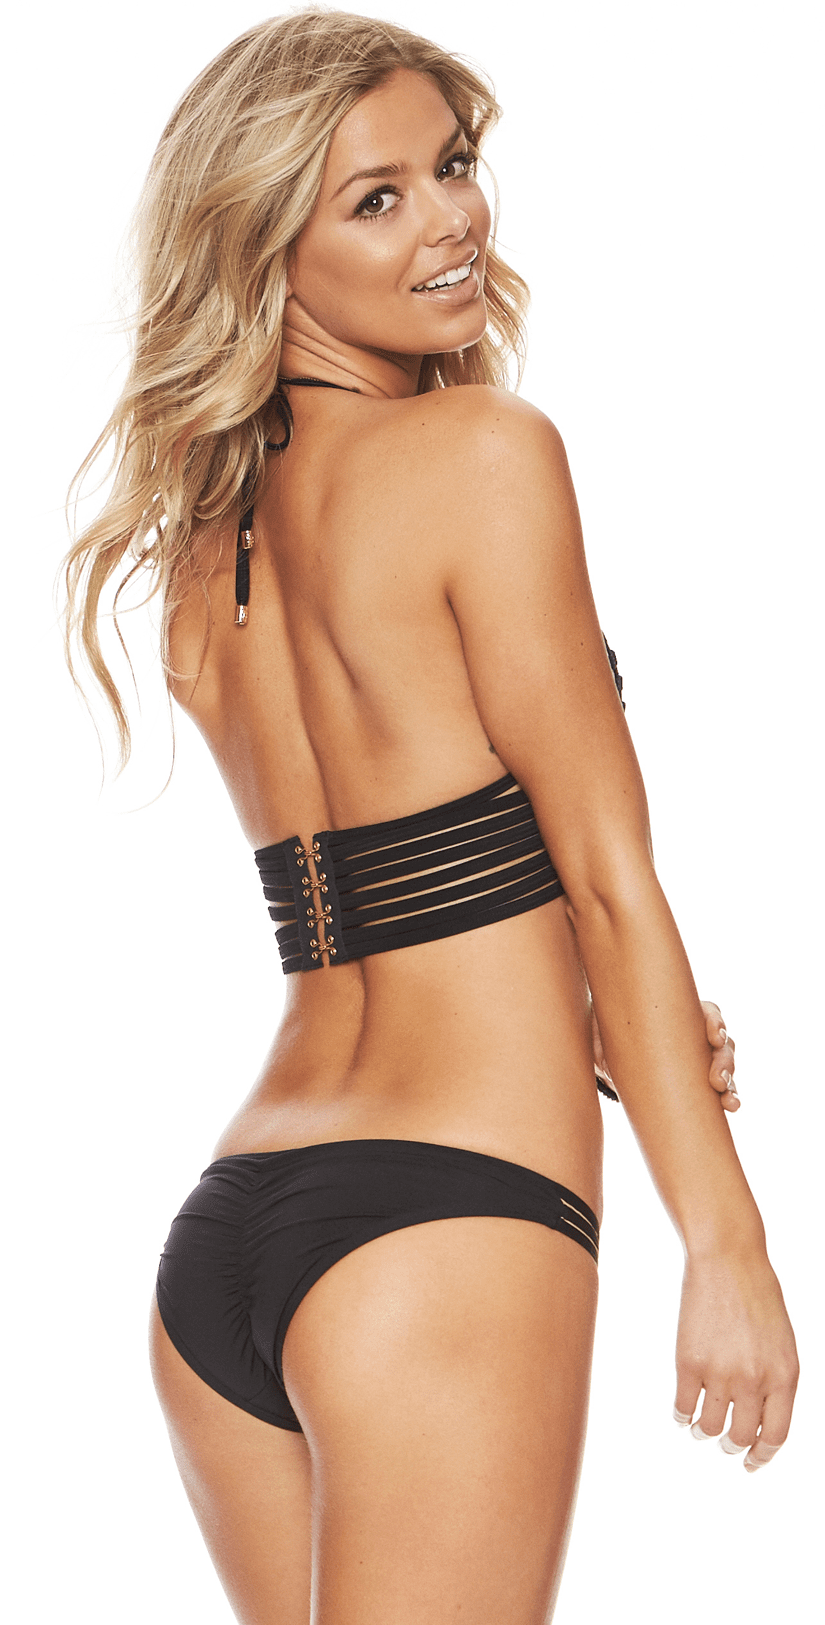 Beach Bunny Hard Summer Long Line Bikini Top in Black B16104T2-BLK: